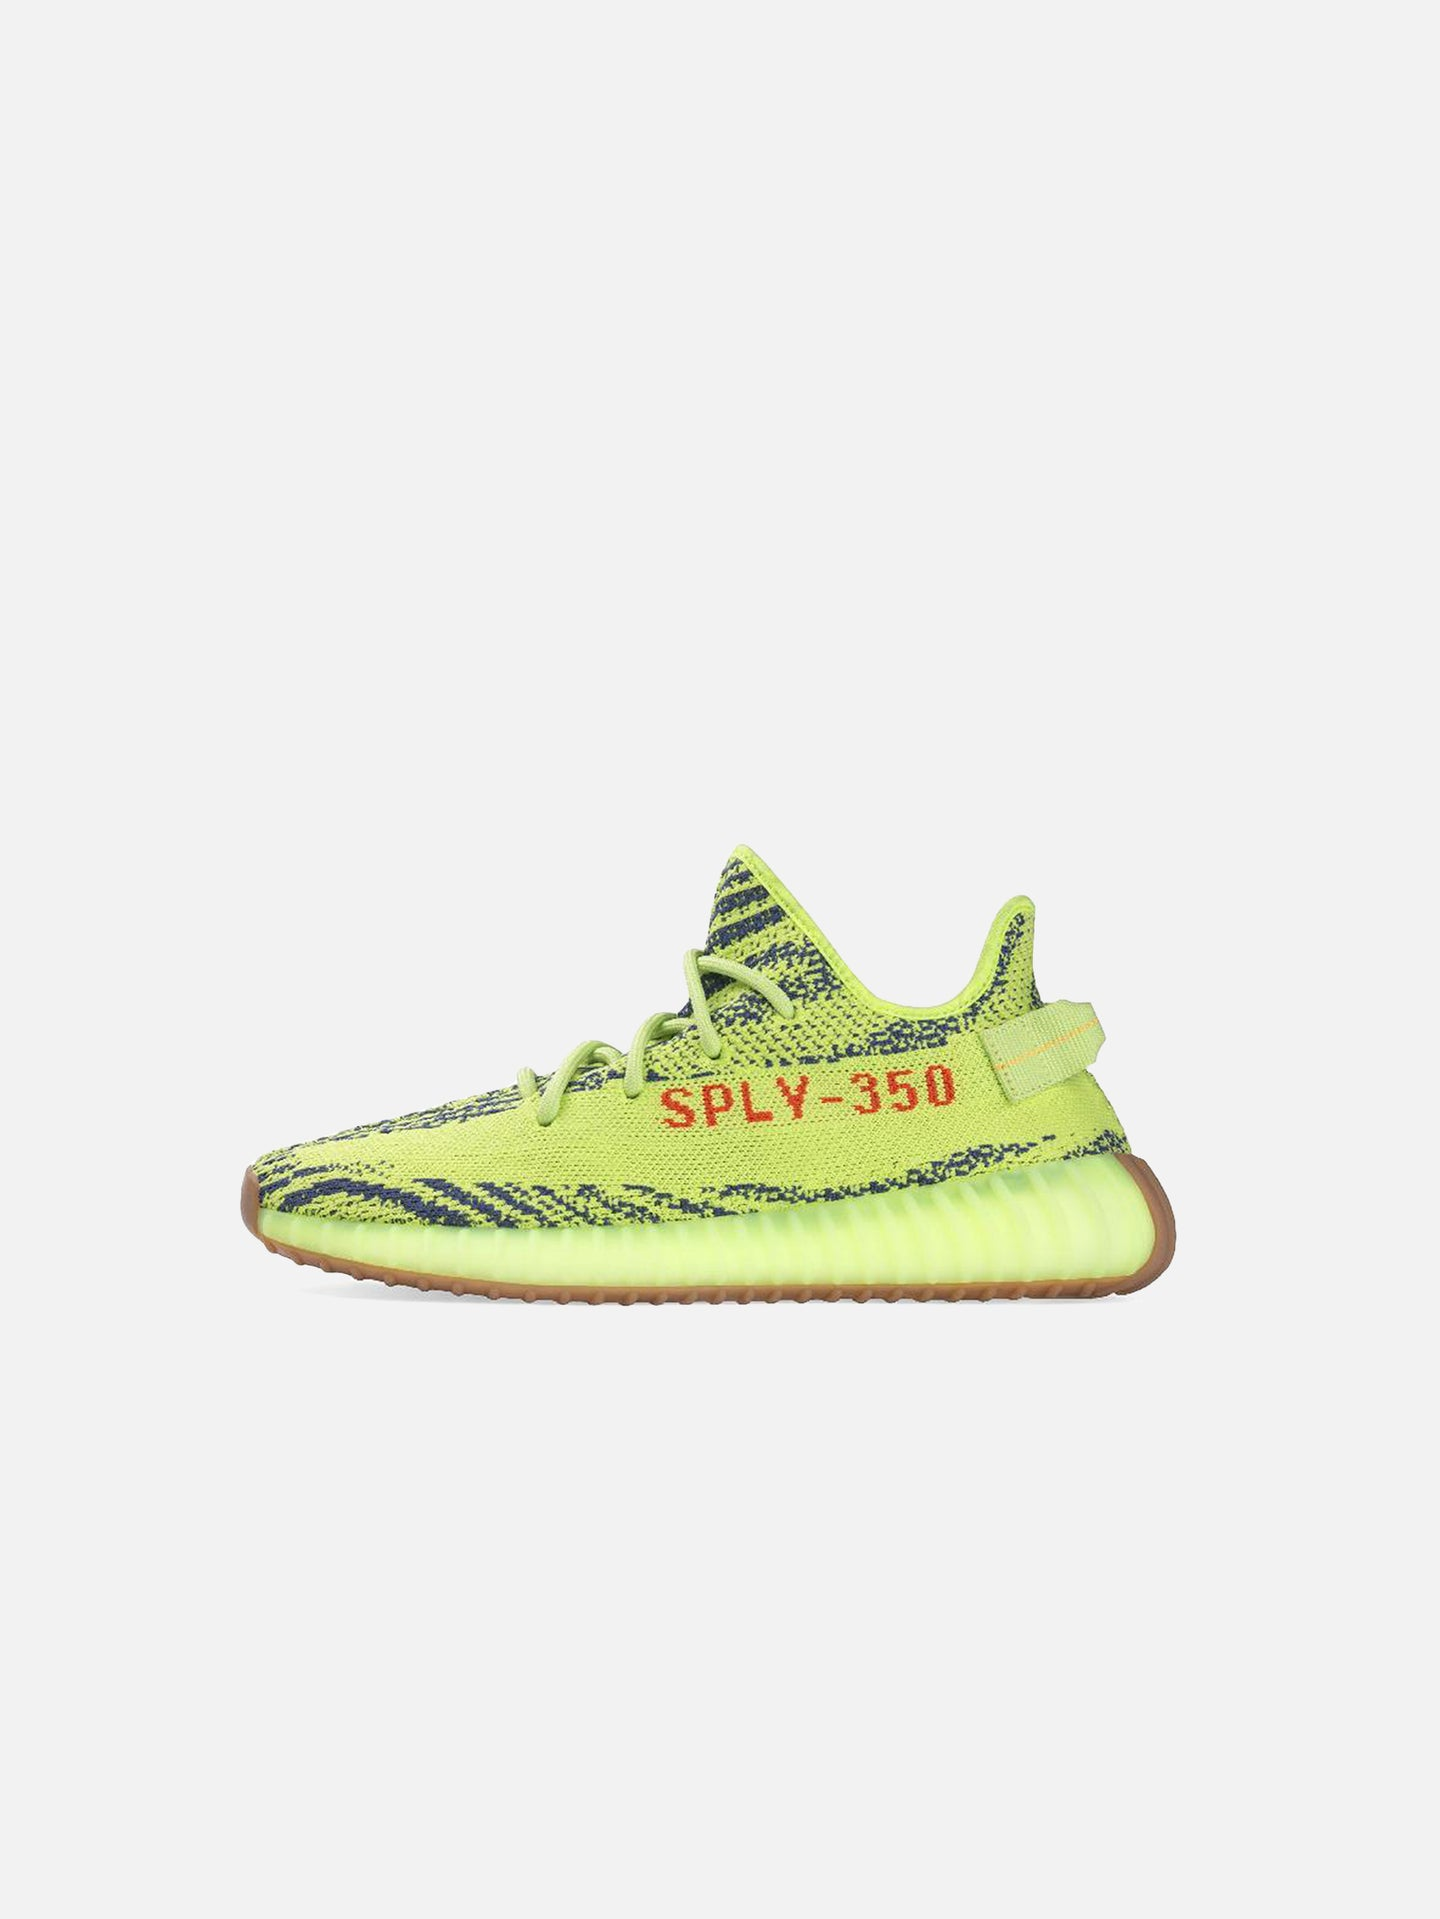 4a3f8781206 Adidas + Kanye West Yeezy Boost 350 V2  Frozen Yellow